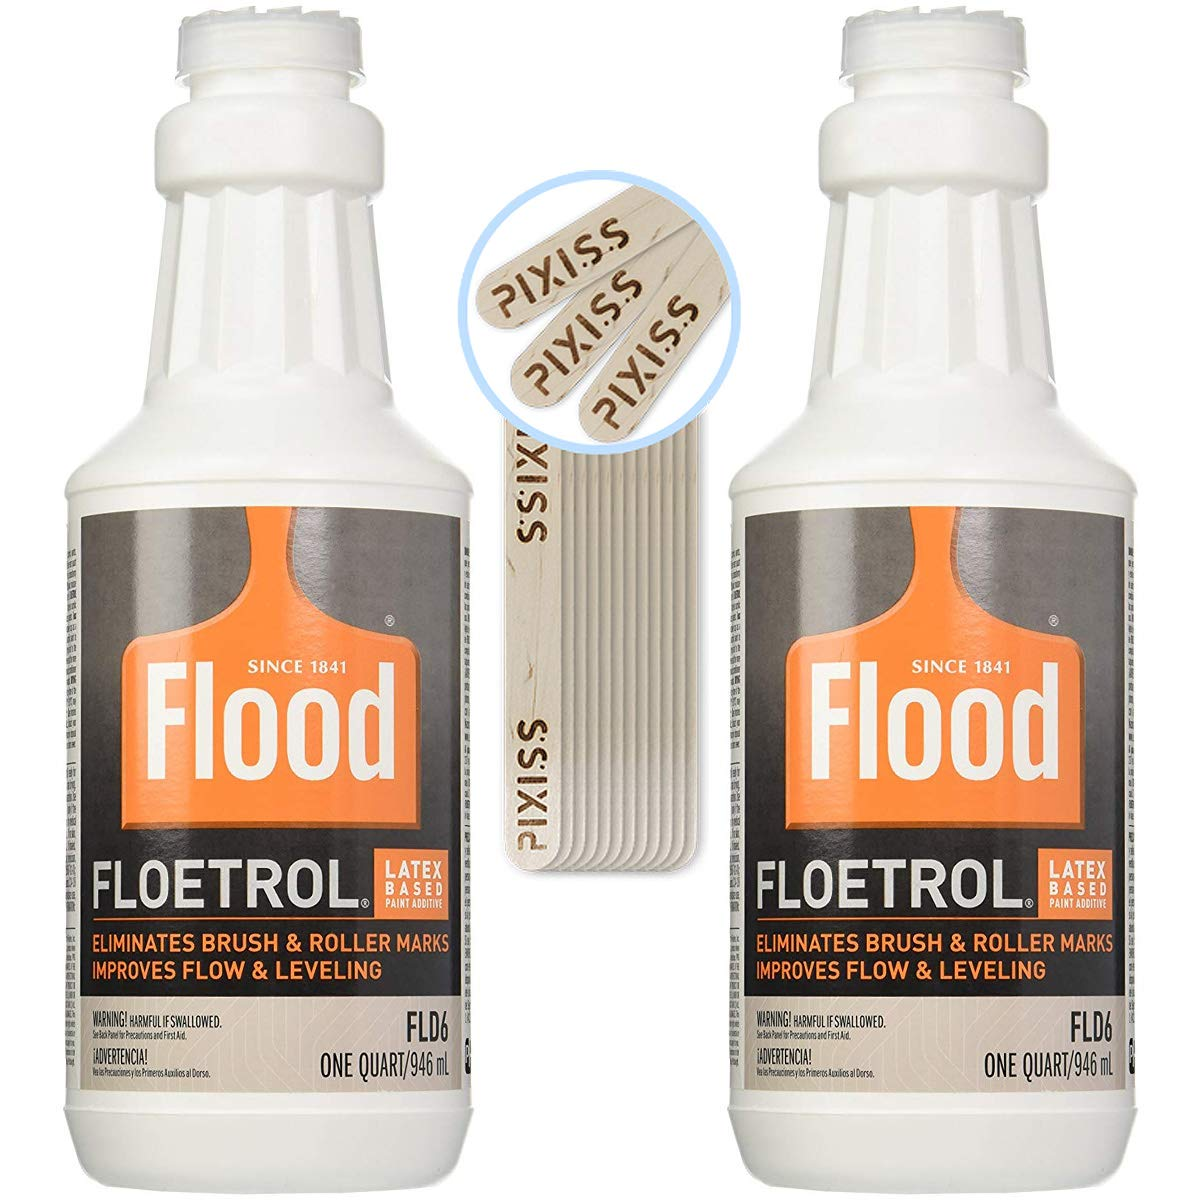 2X 1-Quart Flood Floetrol Additive and 20x 6-inch Pixiss Wood Mixing Sticks Pouring Bundle by GrandProducts